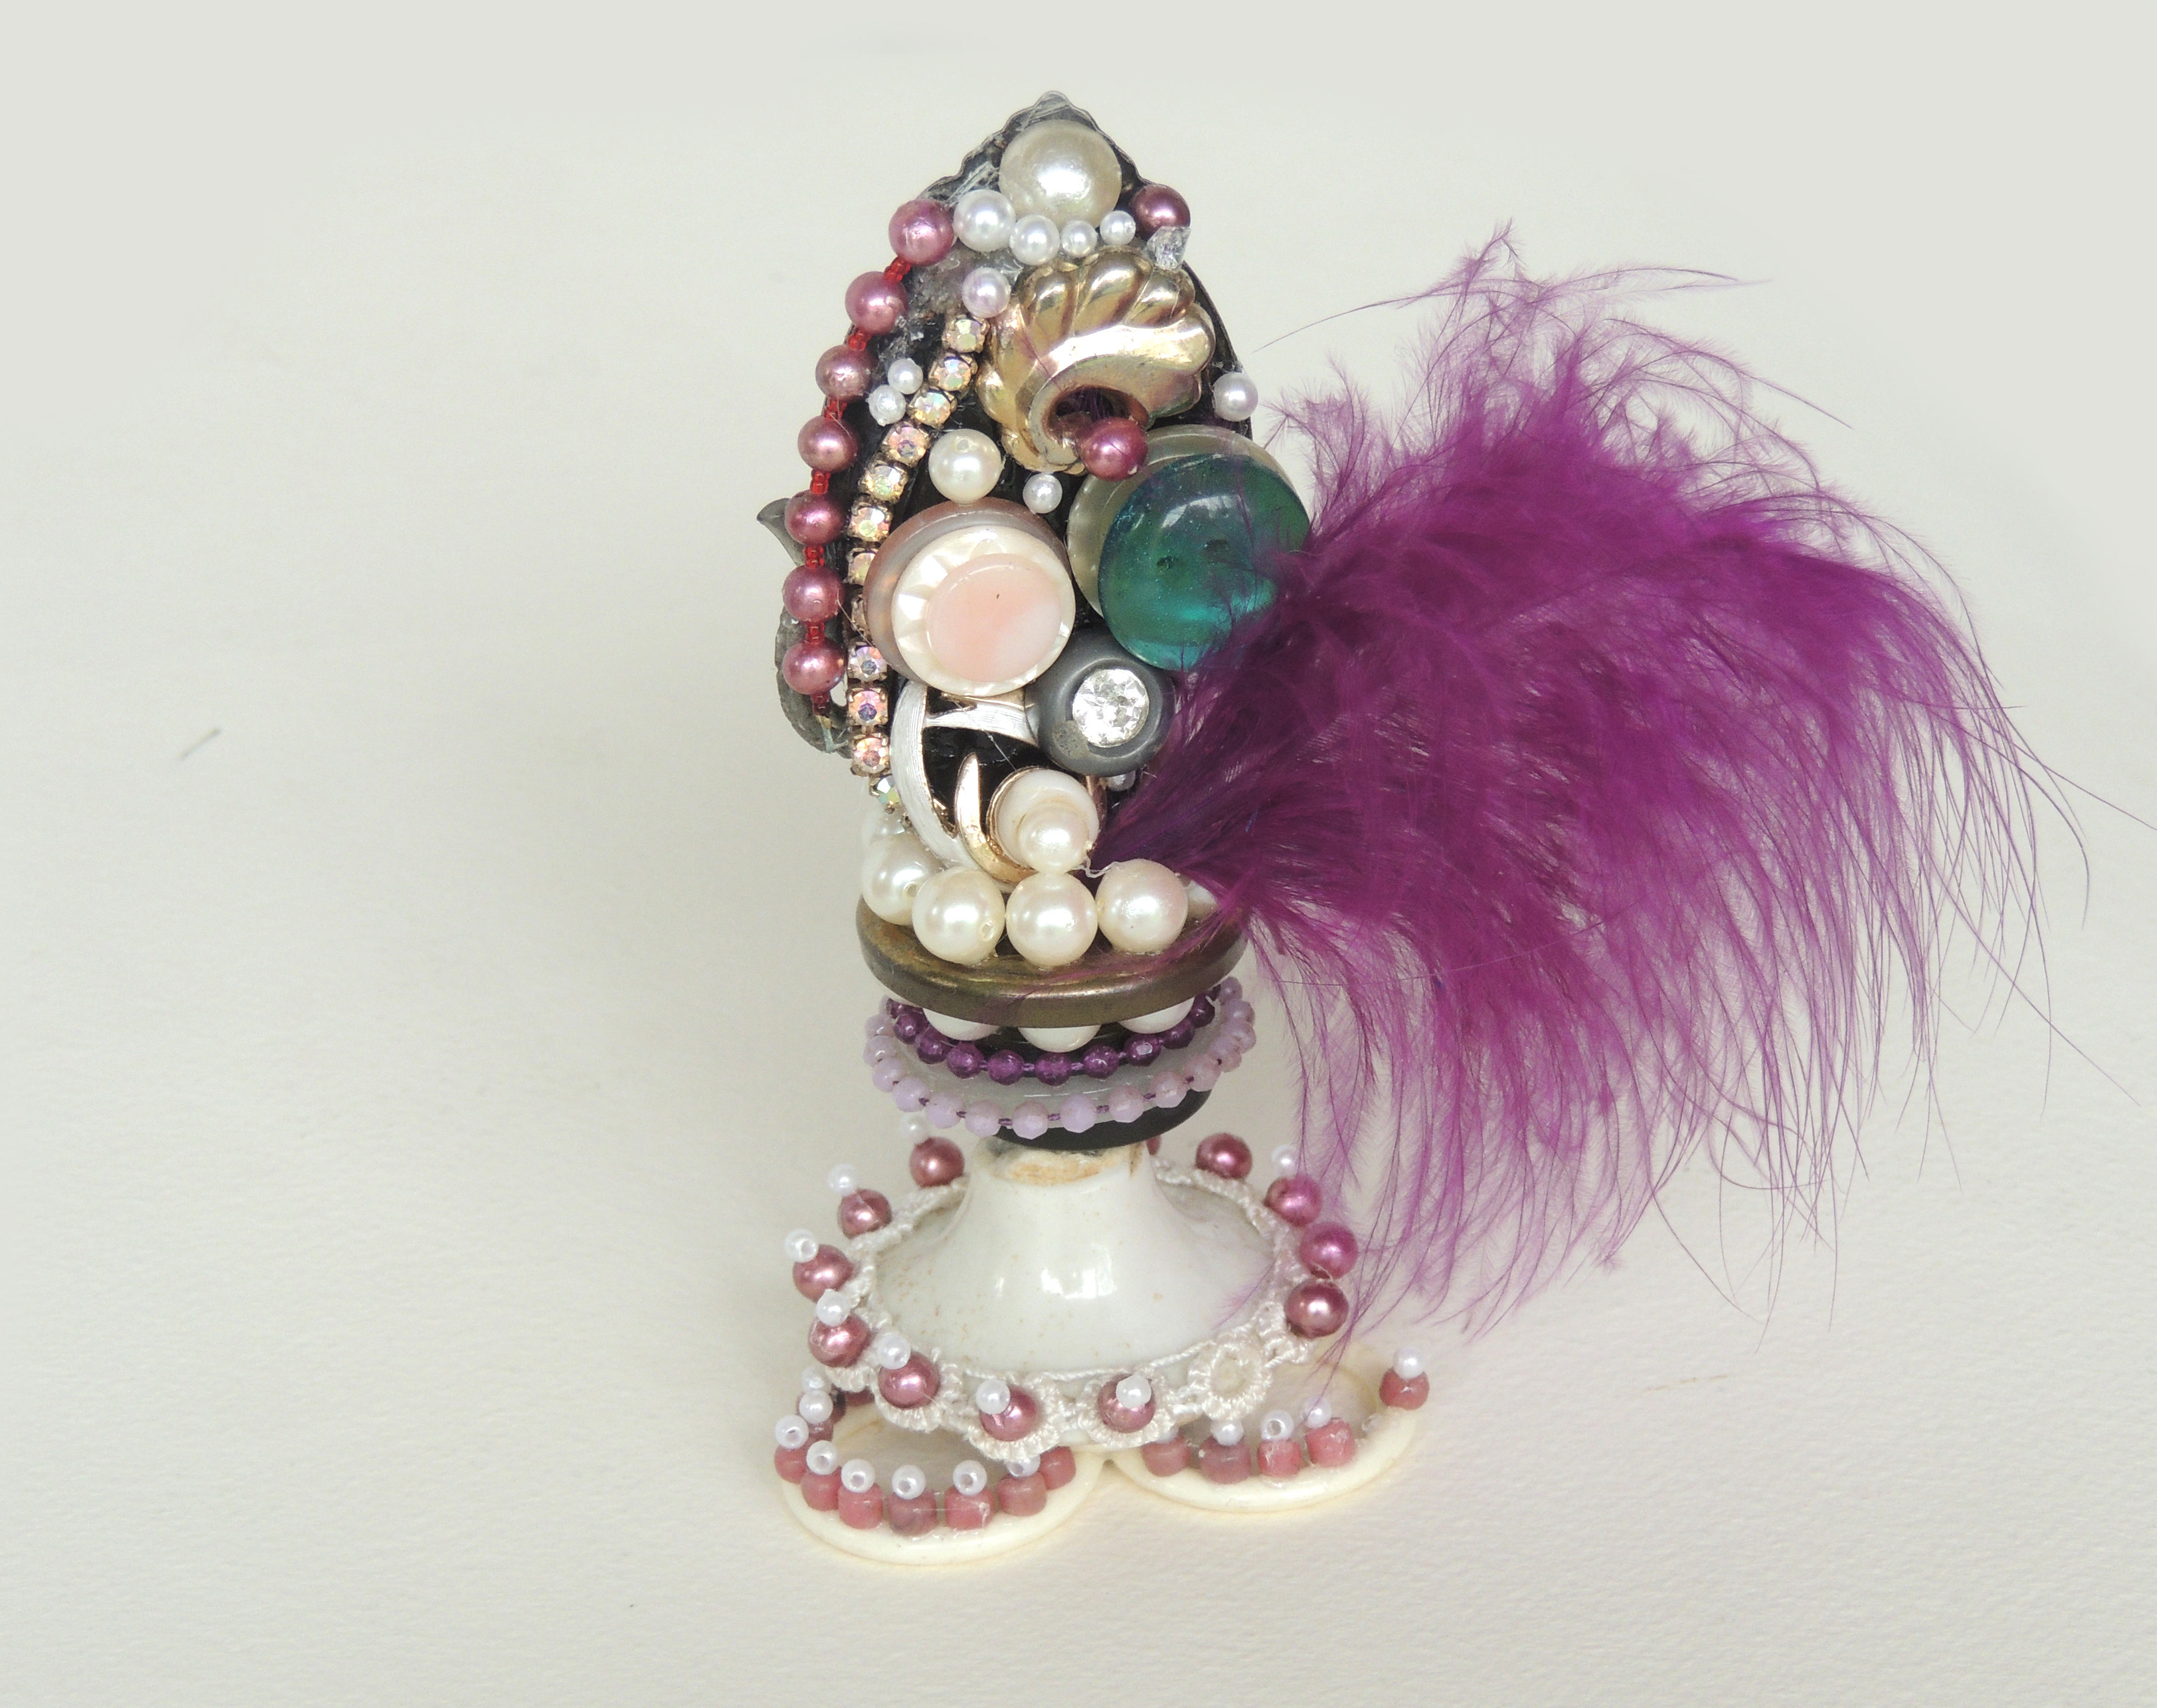 Marianne Rabb Britton | BEADS WITH PURPLE FEATHERS-SMALL | Beads & Found Objects | 5 x 4 x 2.5"